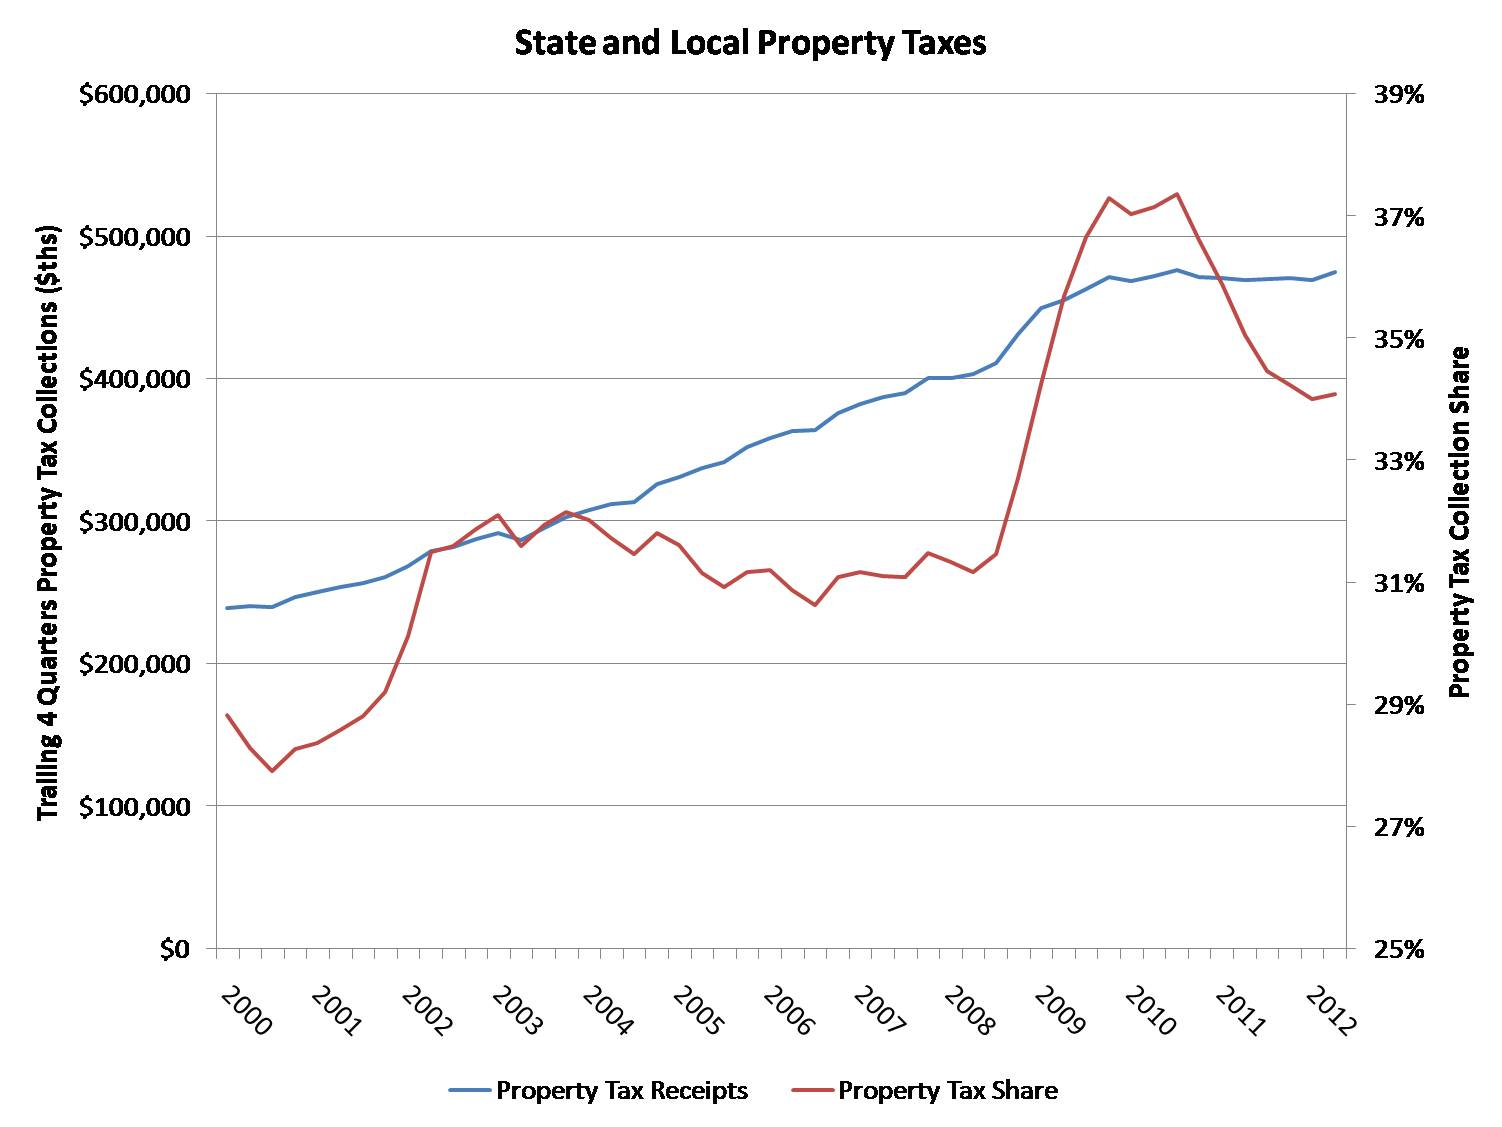 Property Taxes Are Paid To Which Levels Of Government